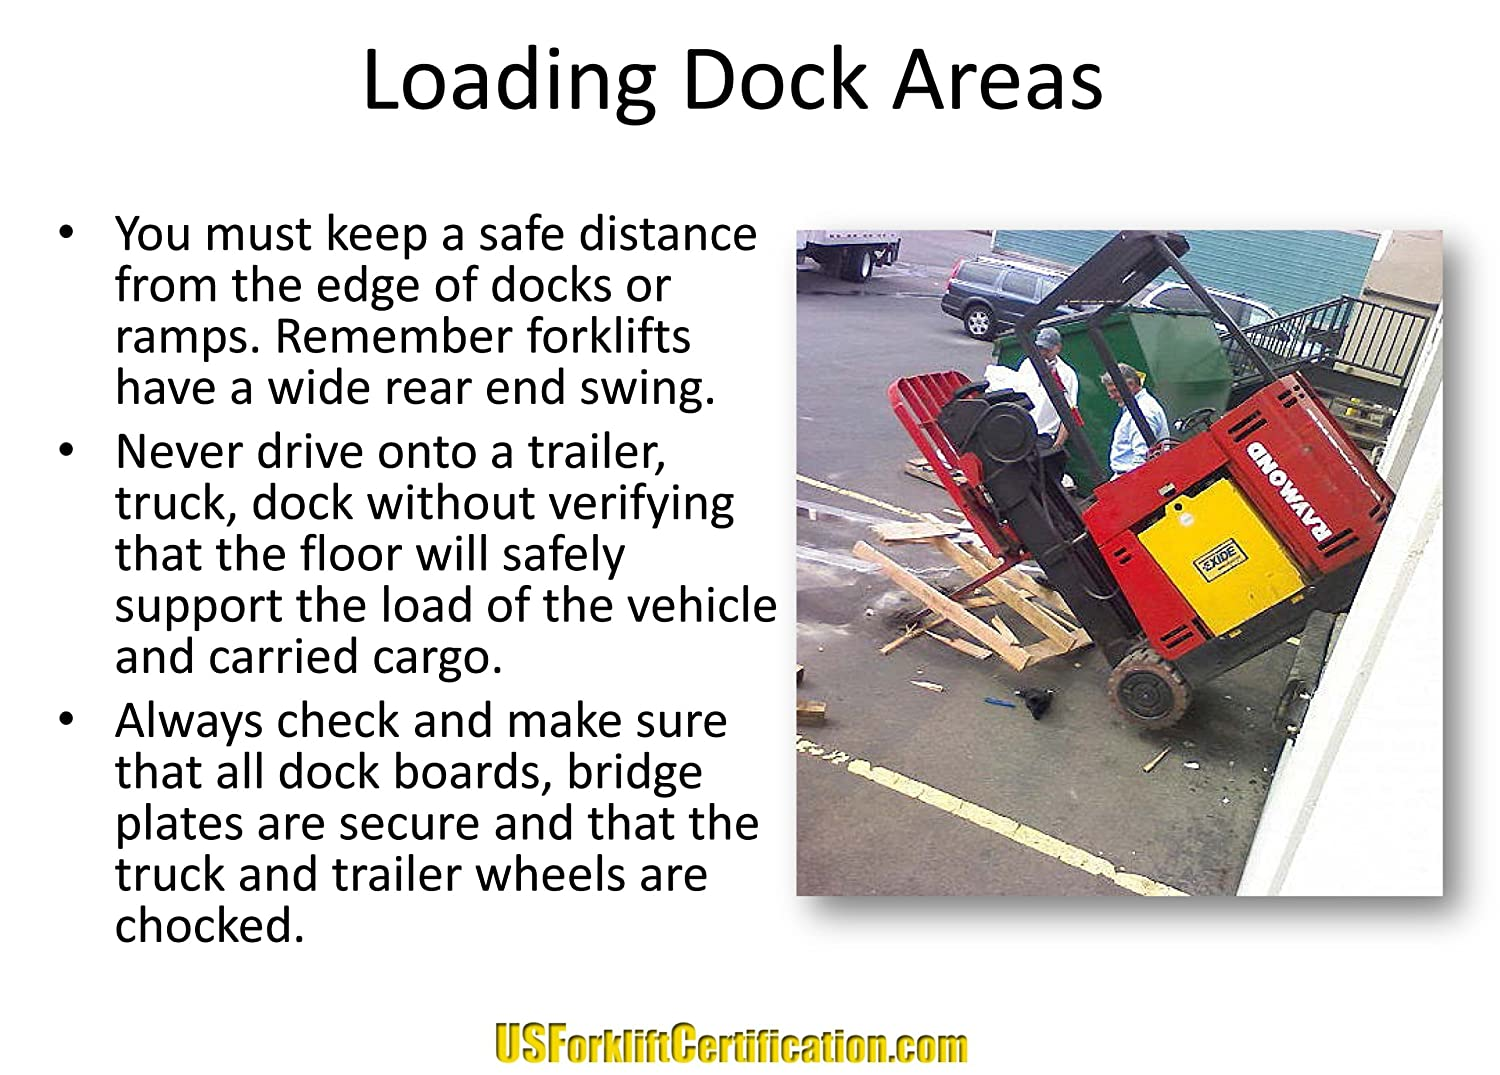 Amazon 1 forklift certification kit everything you need to amazon 1 forklift certification kit everything you need to certify an unlimited number of operators get the train the trainer course free a 95 xflitez Choice Image